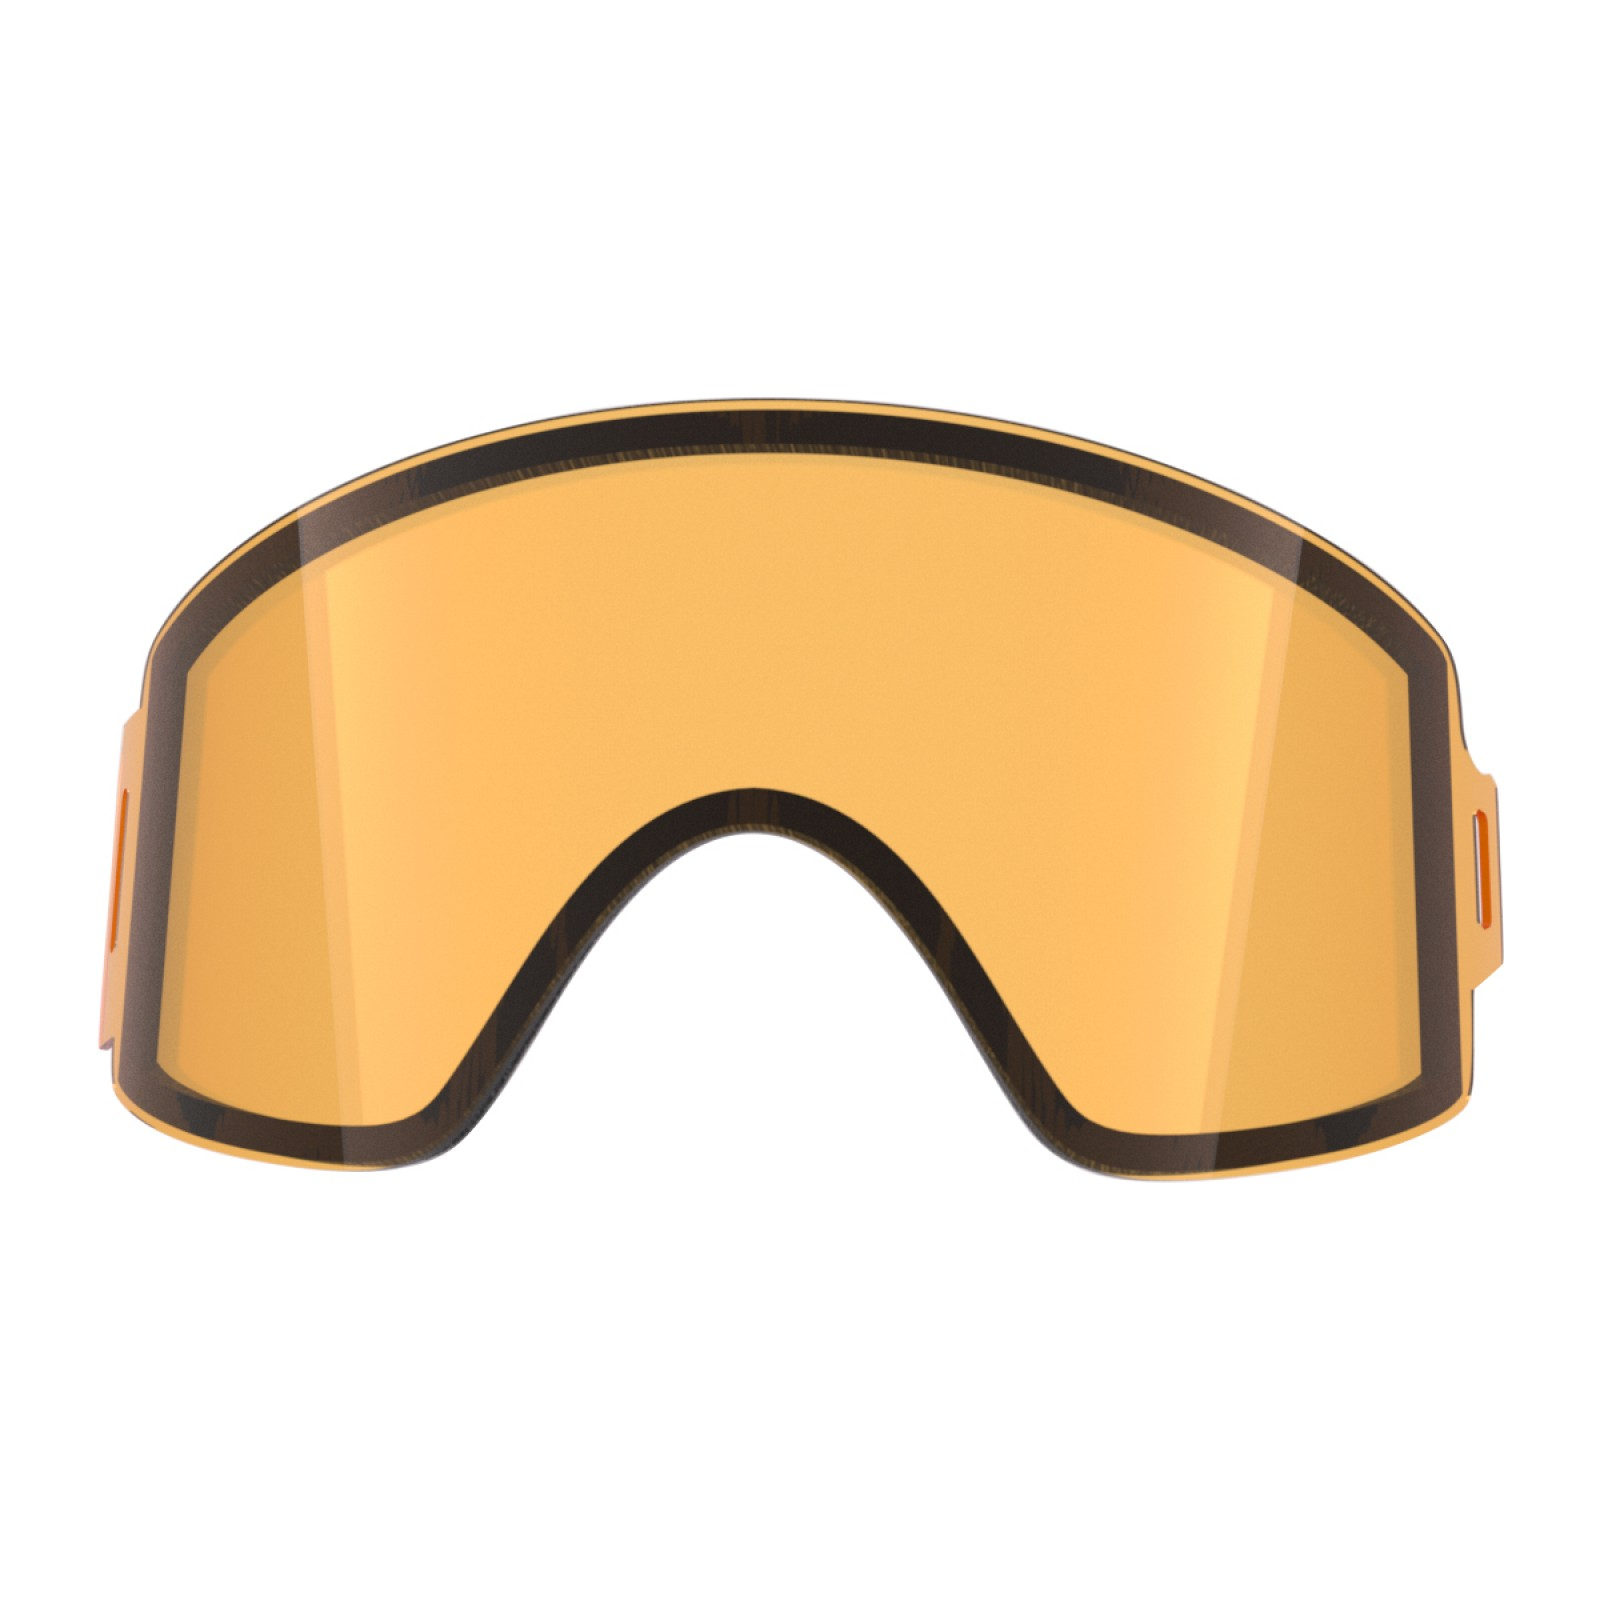 PERSIMMON lens for  Shift goggle